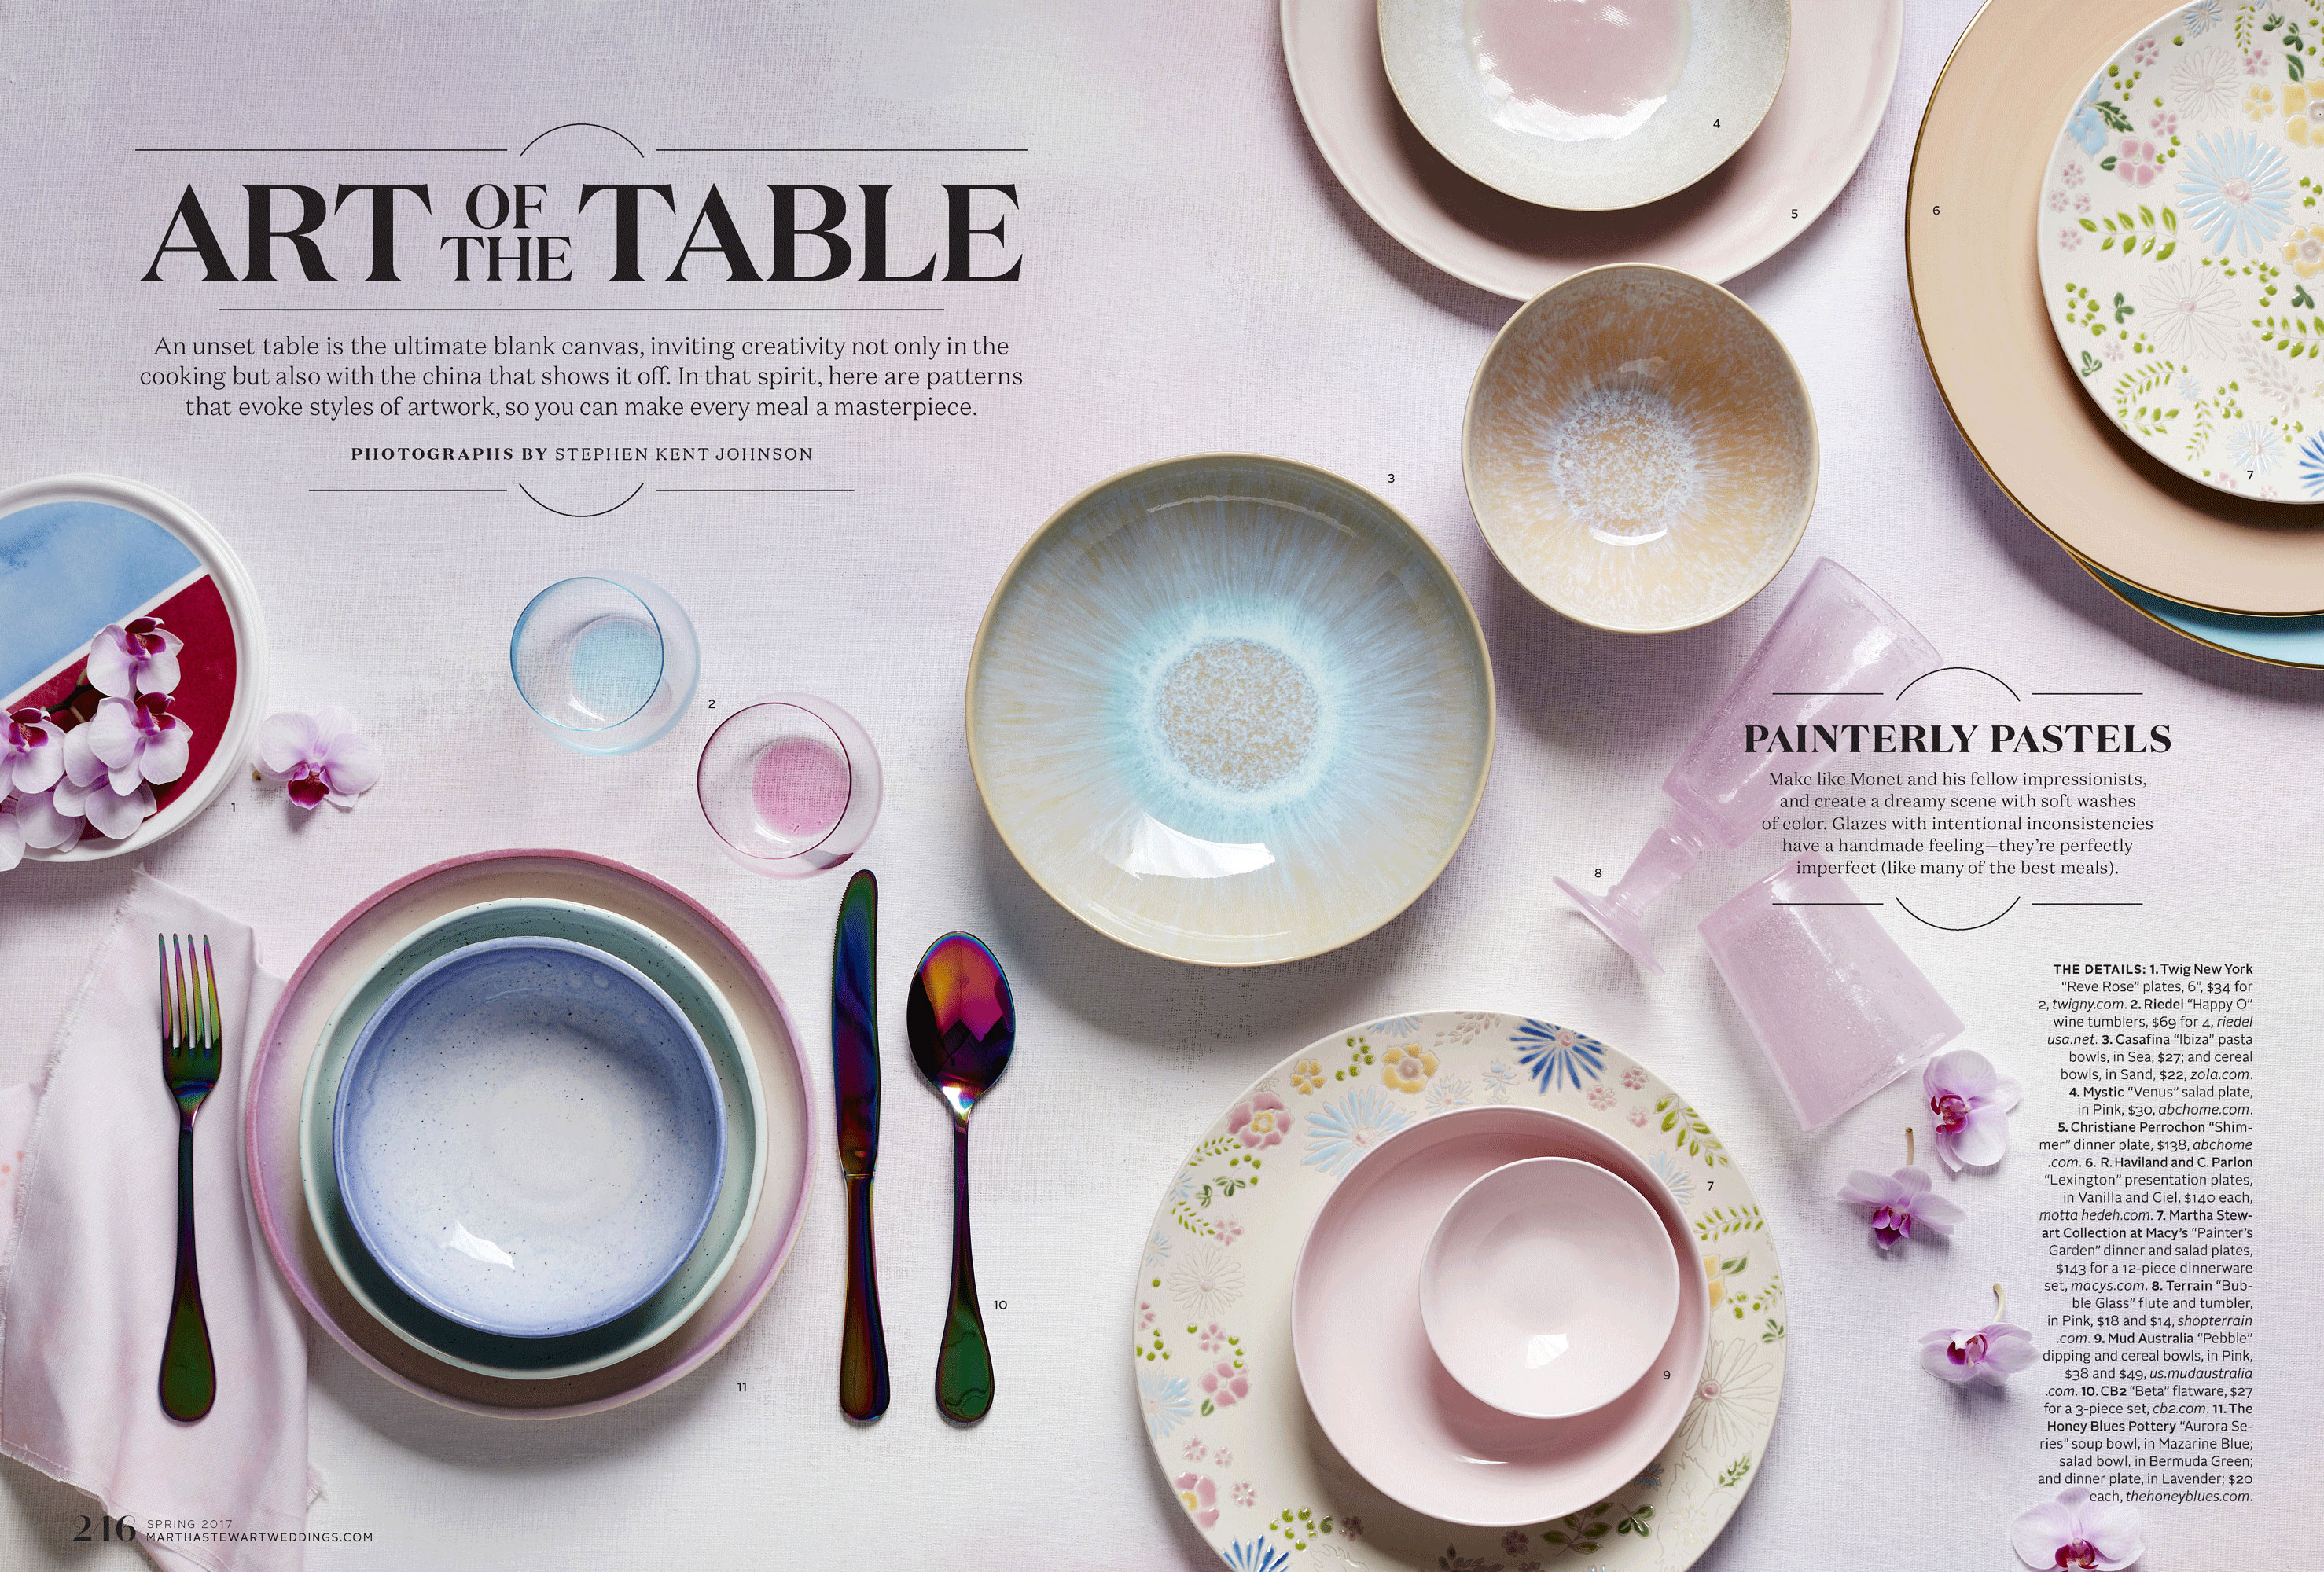 Art of the Table by Megan Hillman